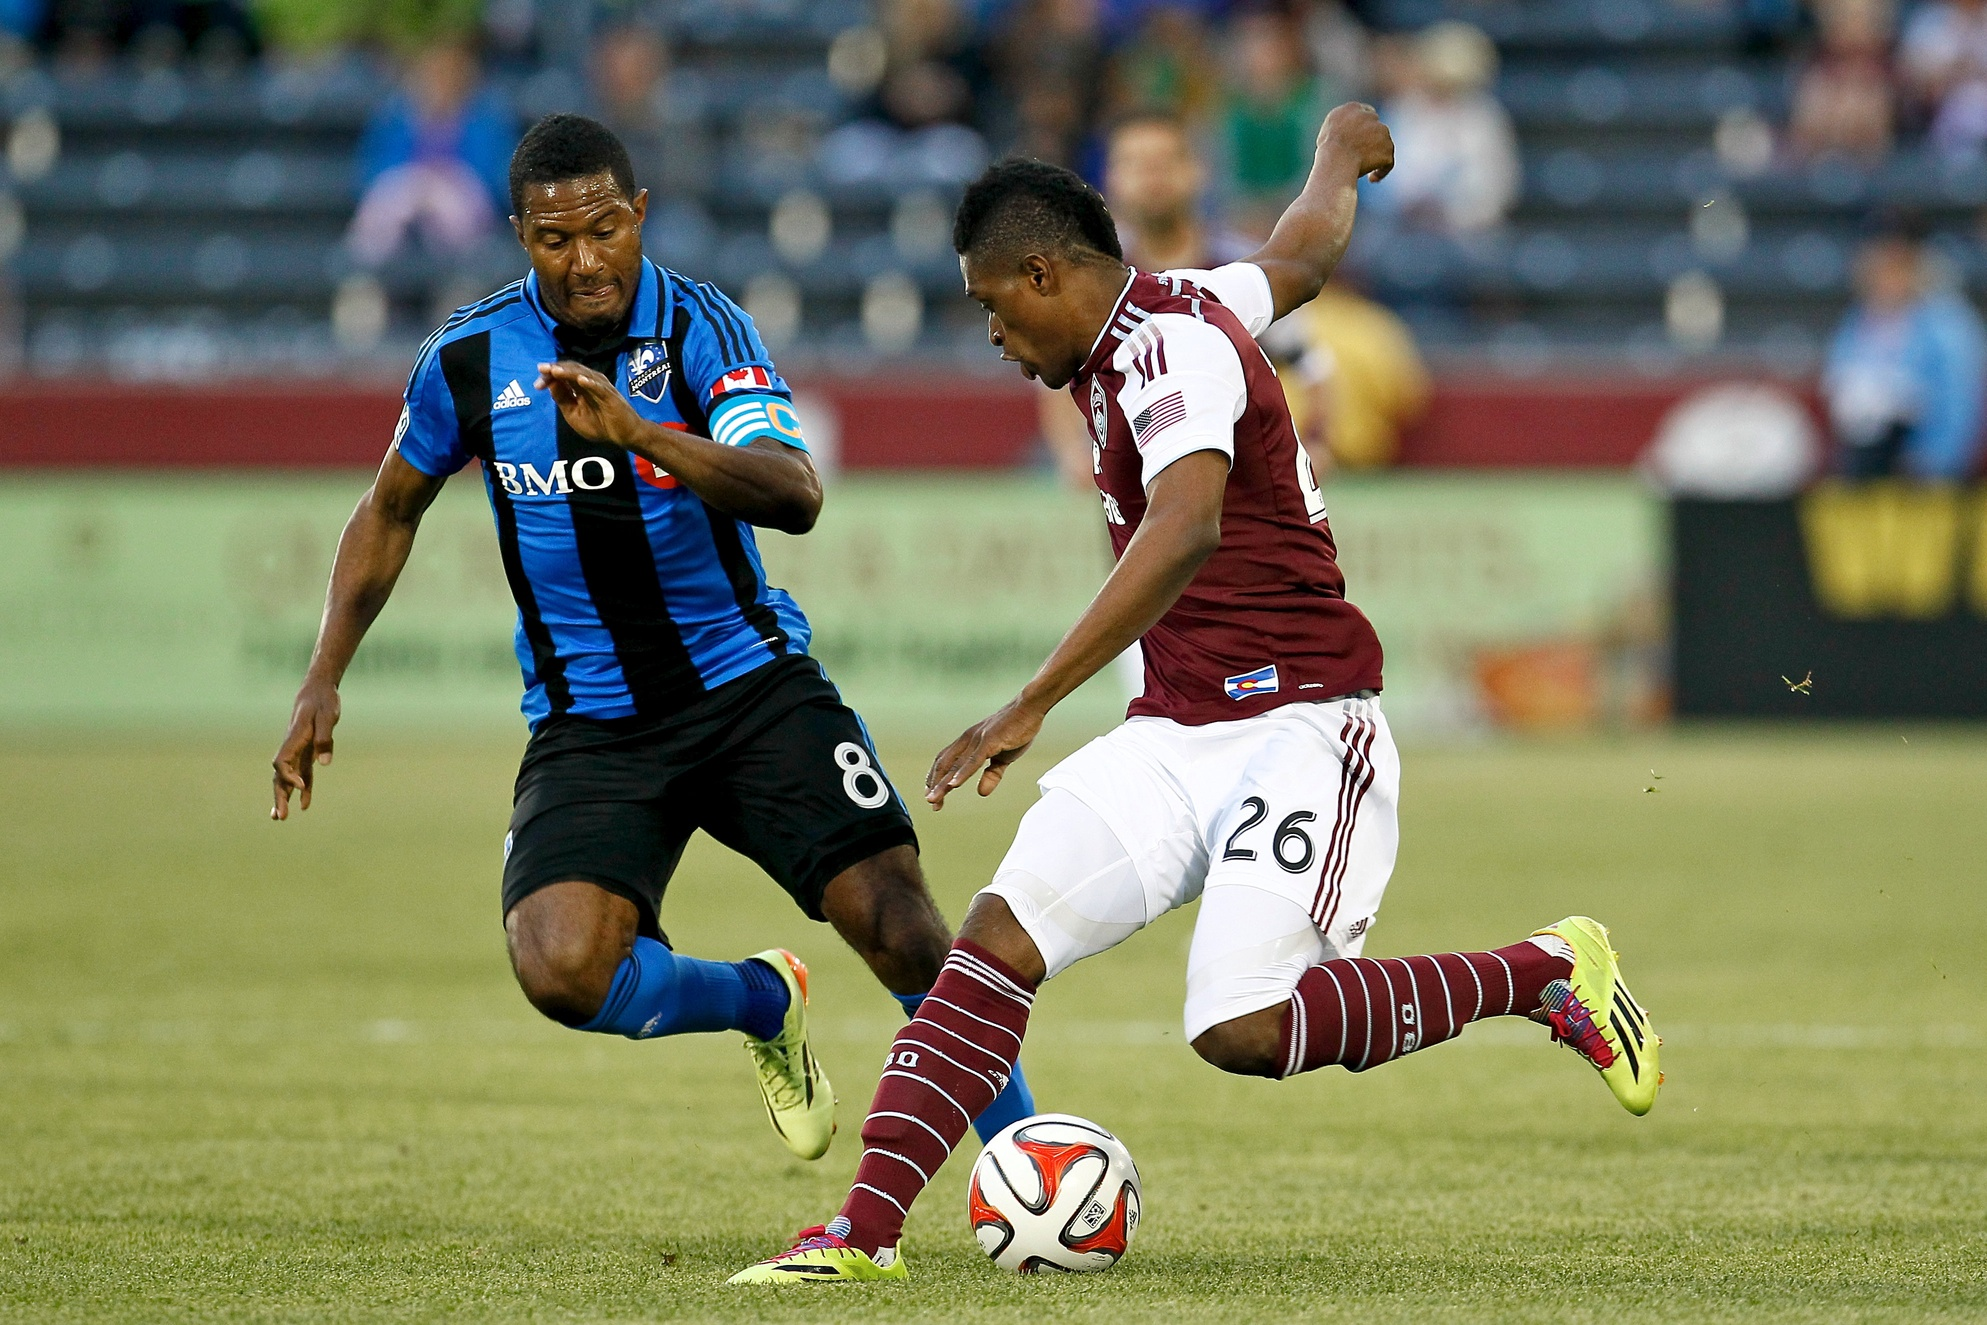 Patrice-bernier-montreal-impact-deshorn-brown-colorado-rapids-major-league-soccer-05242014_1tvhl8tqxr8w1ey6ex75ek83g